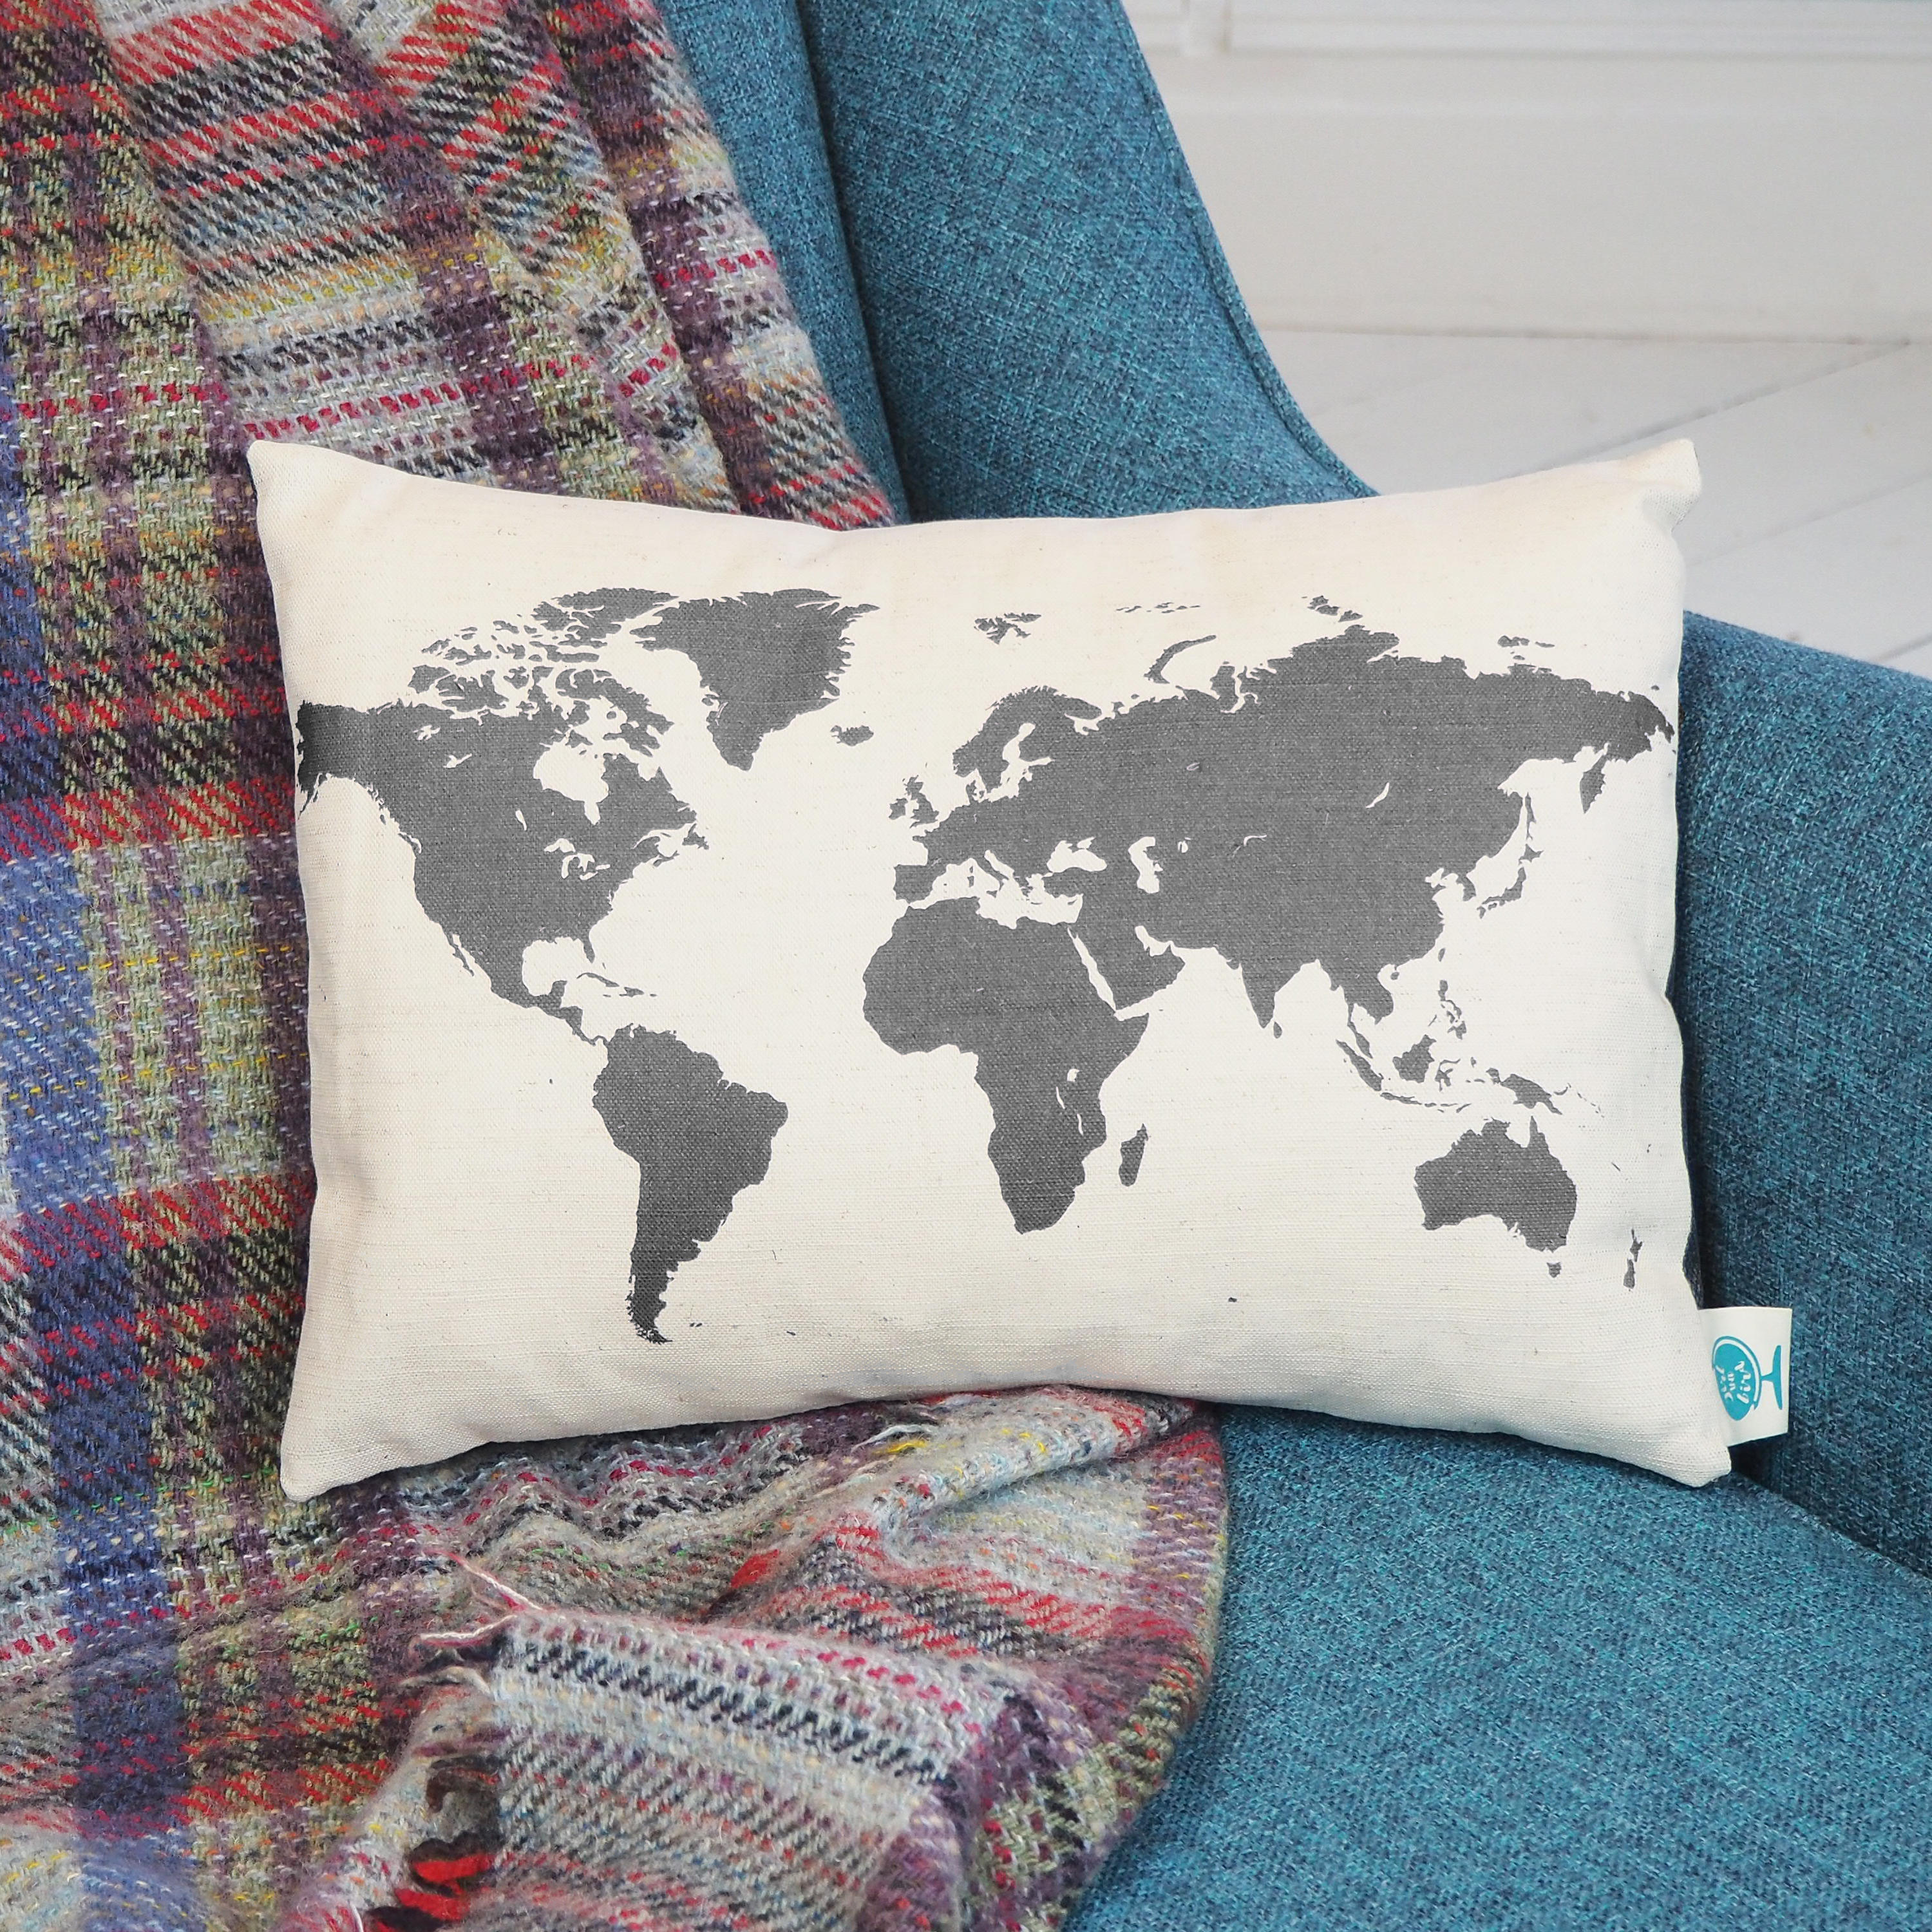 World map silhouette cushion gumiabroncs Images